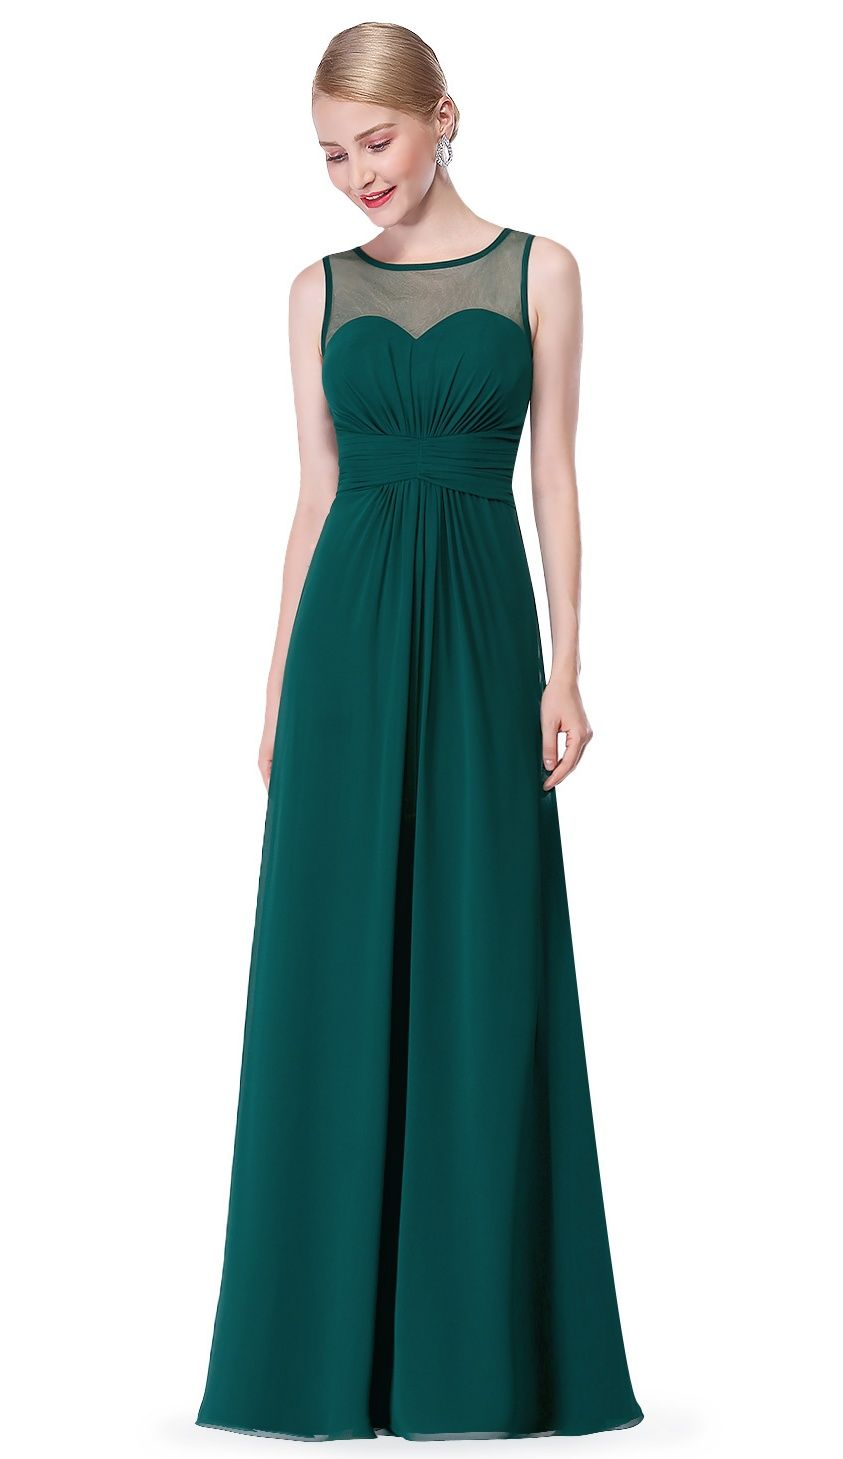 2a69914bf431 Ever-Pretty Women's Elegant Long A-Line Sleeveless Summer Black Tie  Romantic Beach Wedding Party Dresses for Women 08761 Green US  12#Sleeveless, #Line, ...